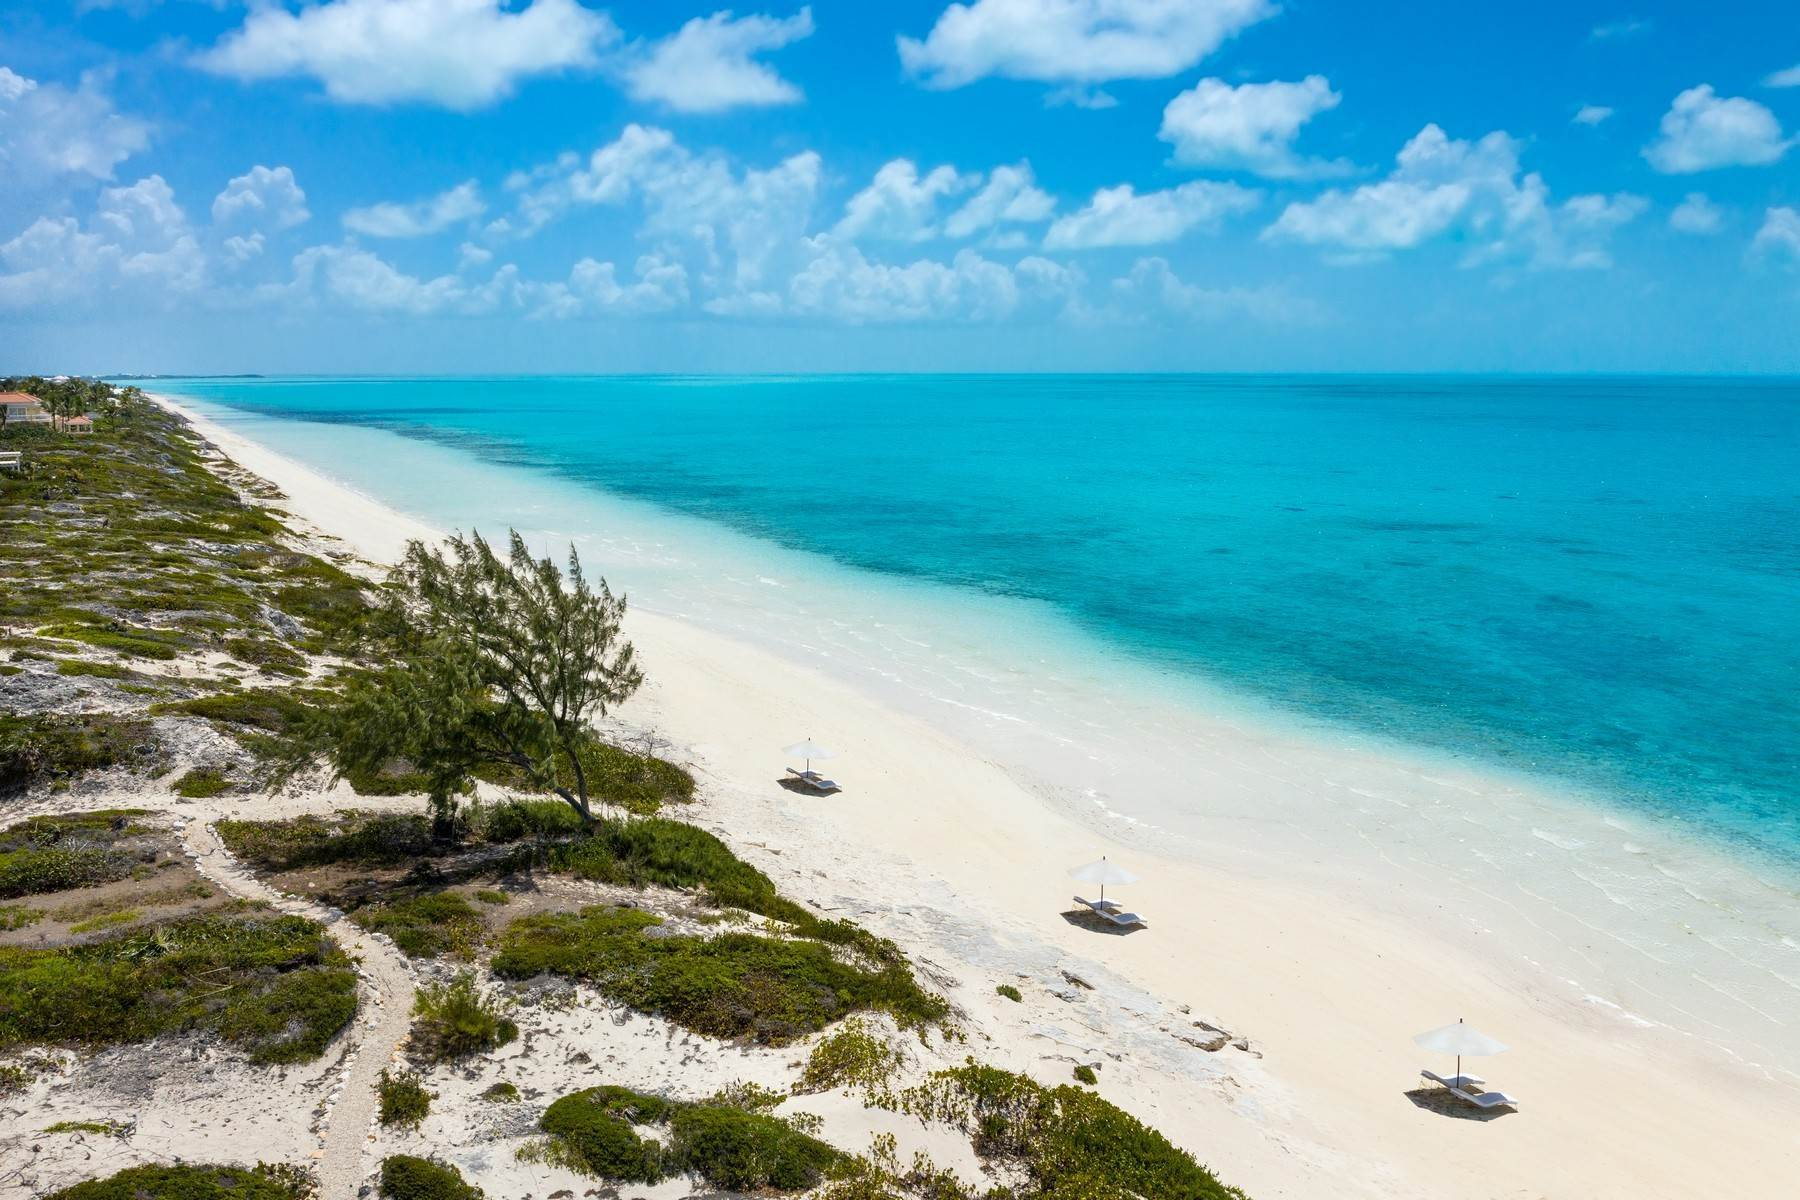 18. Single Family Homes for Sale at LONG BAY BEACH DUNE VILLA 1 AT SOUTH BANK - THE OCEAN ESTATE South Bank, Long Bay, Providenciales Turks And Caicos Islands